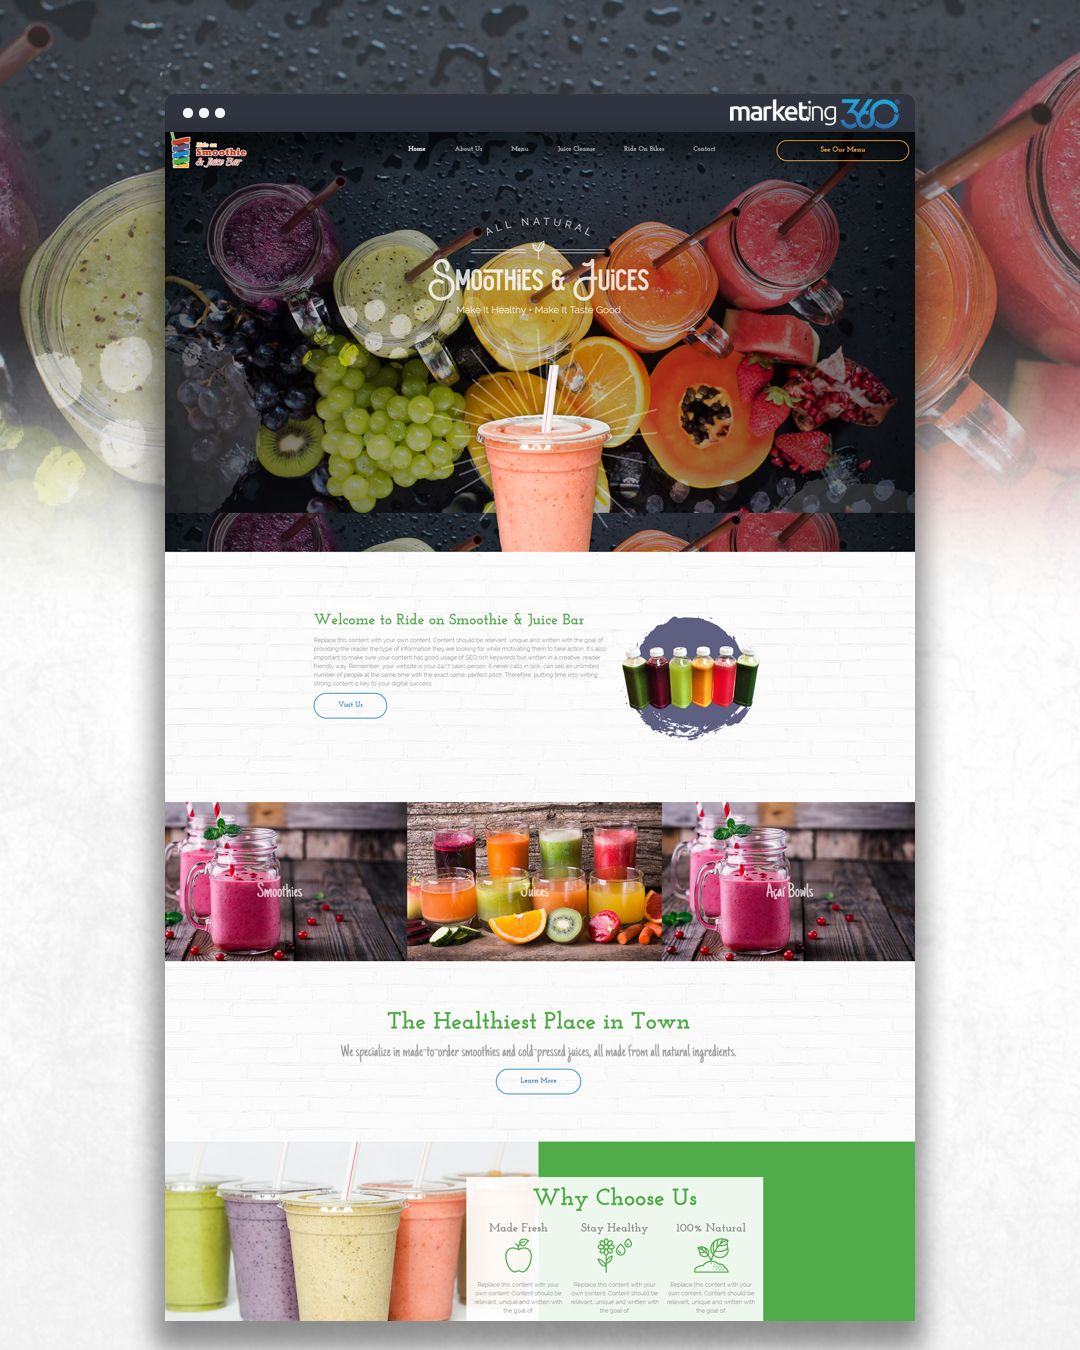 7e248ff0c0 Design of the Day  Smoothie   juice bar website design concept by our  talented designer Casey Hoerr.